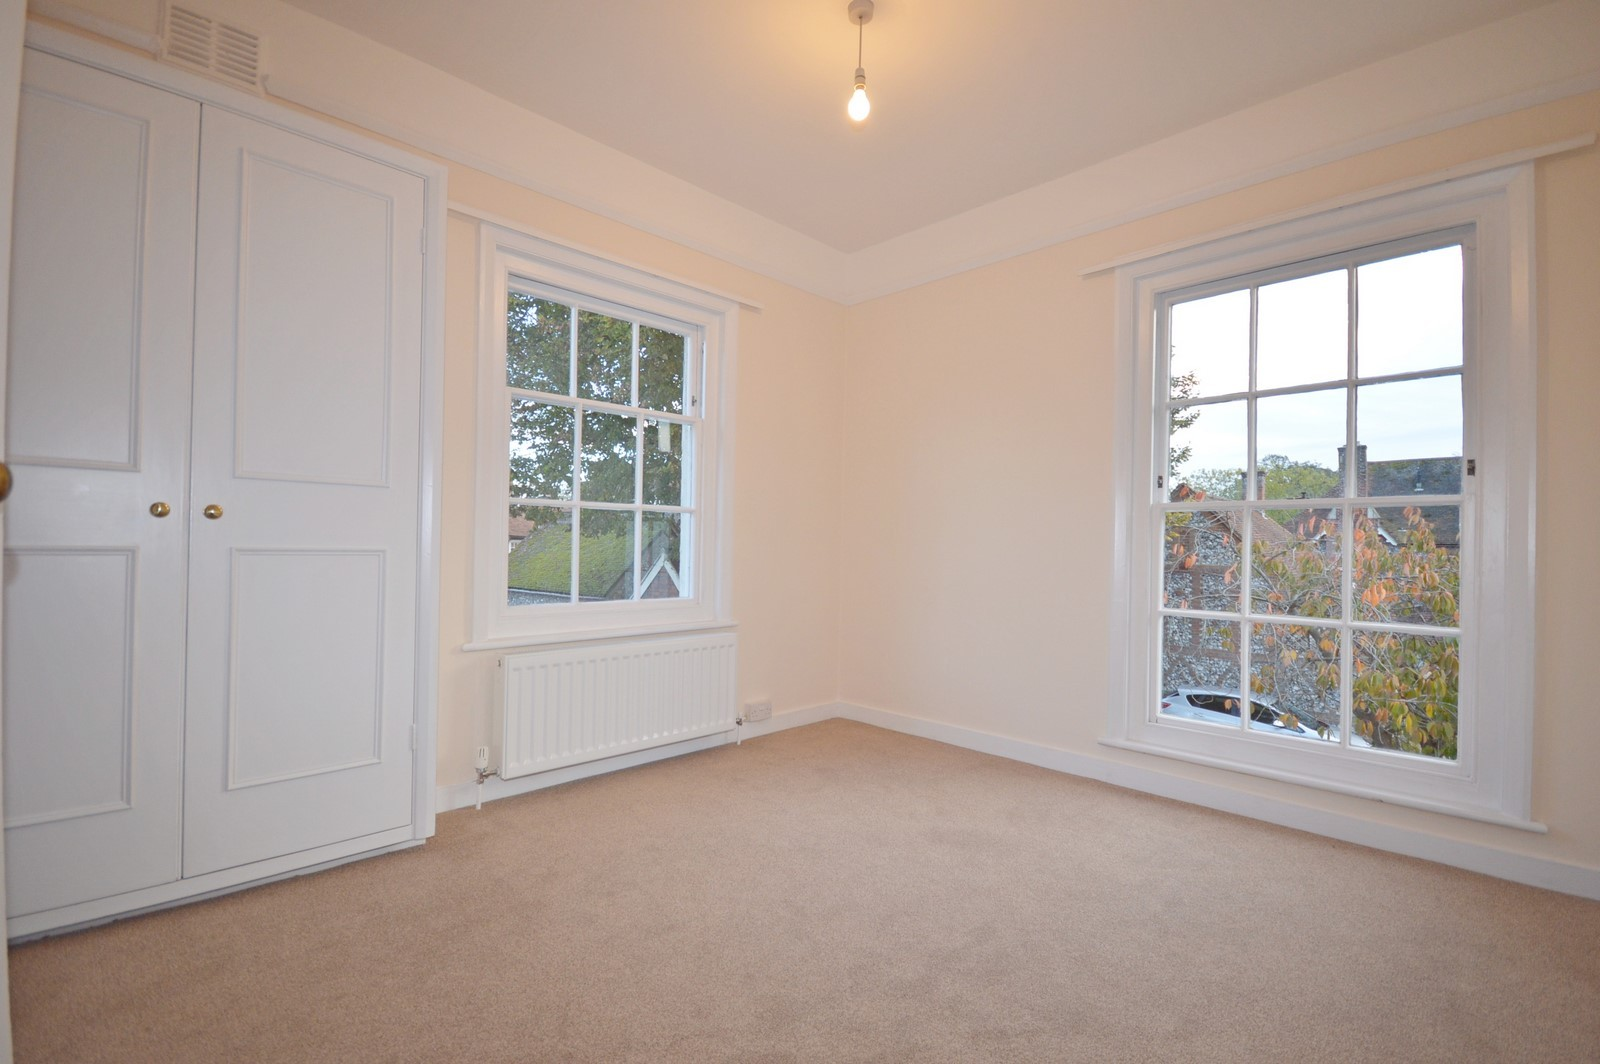 Bedroom House to rent in Chichester City Centre